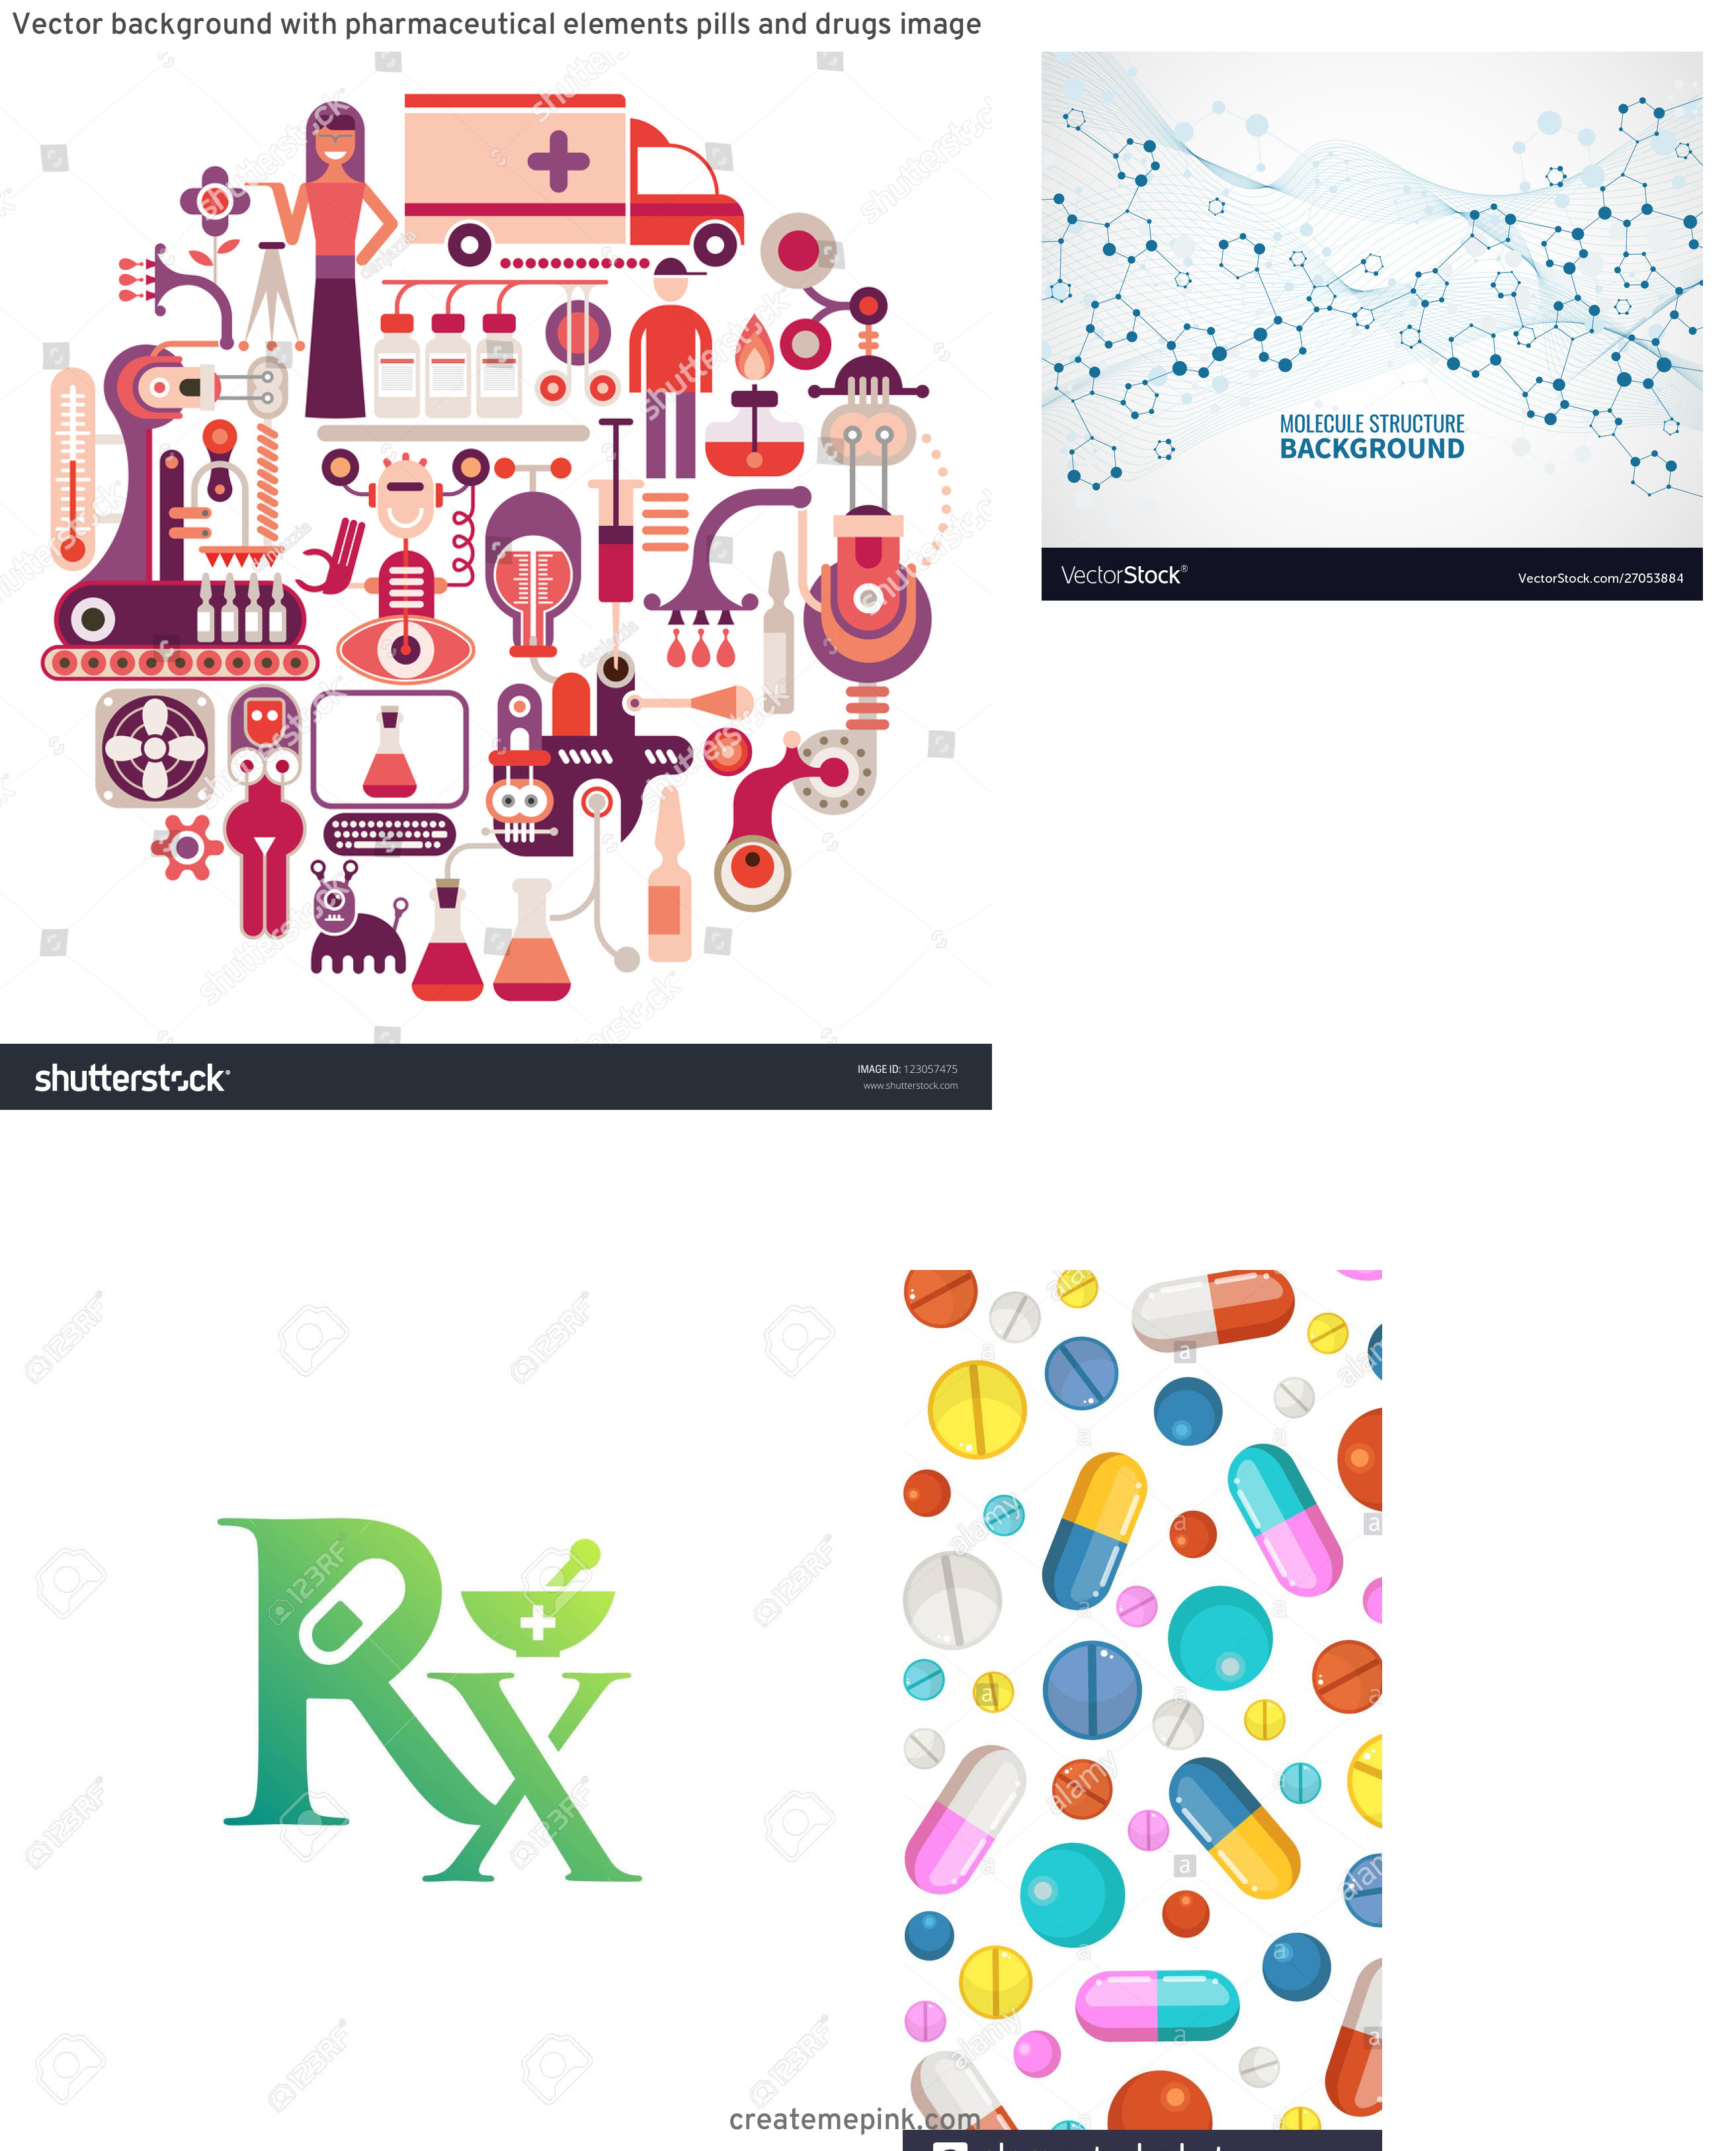 Vector Pharmaceutical: Vector Background With Pharmaceutical Elements Pills And Drugs Image